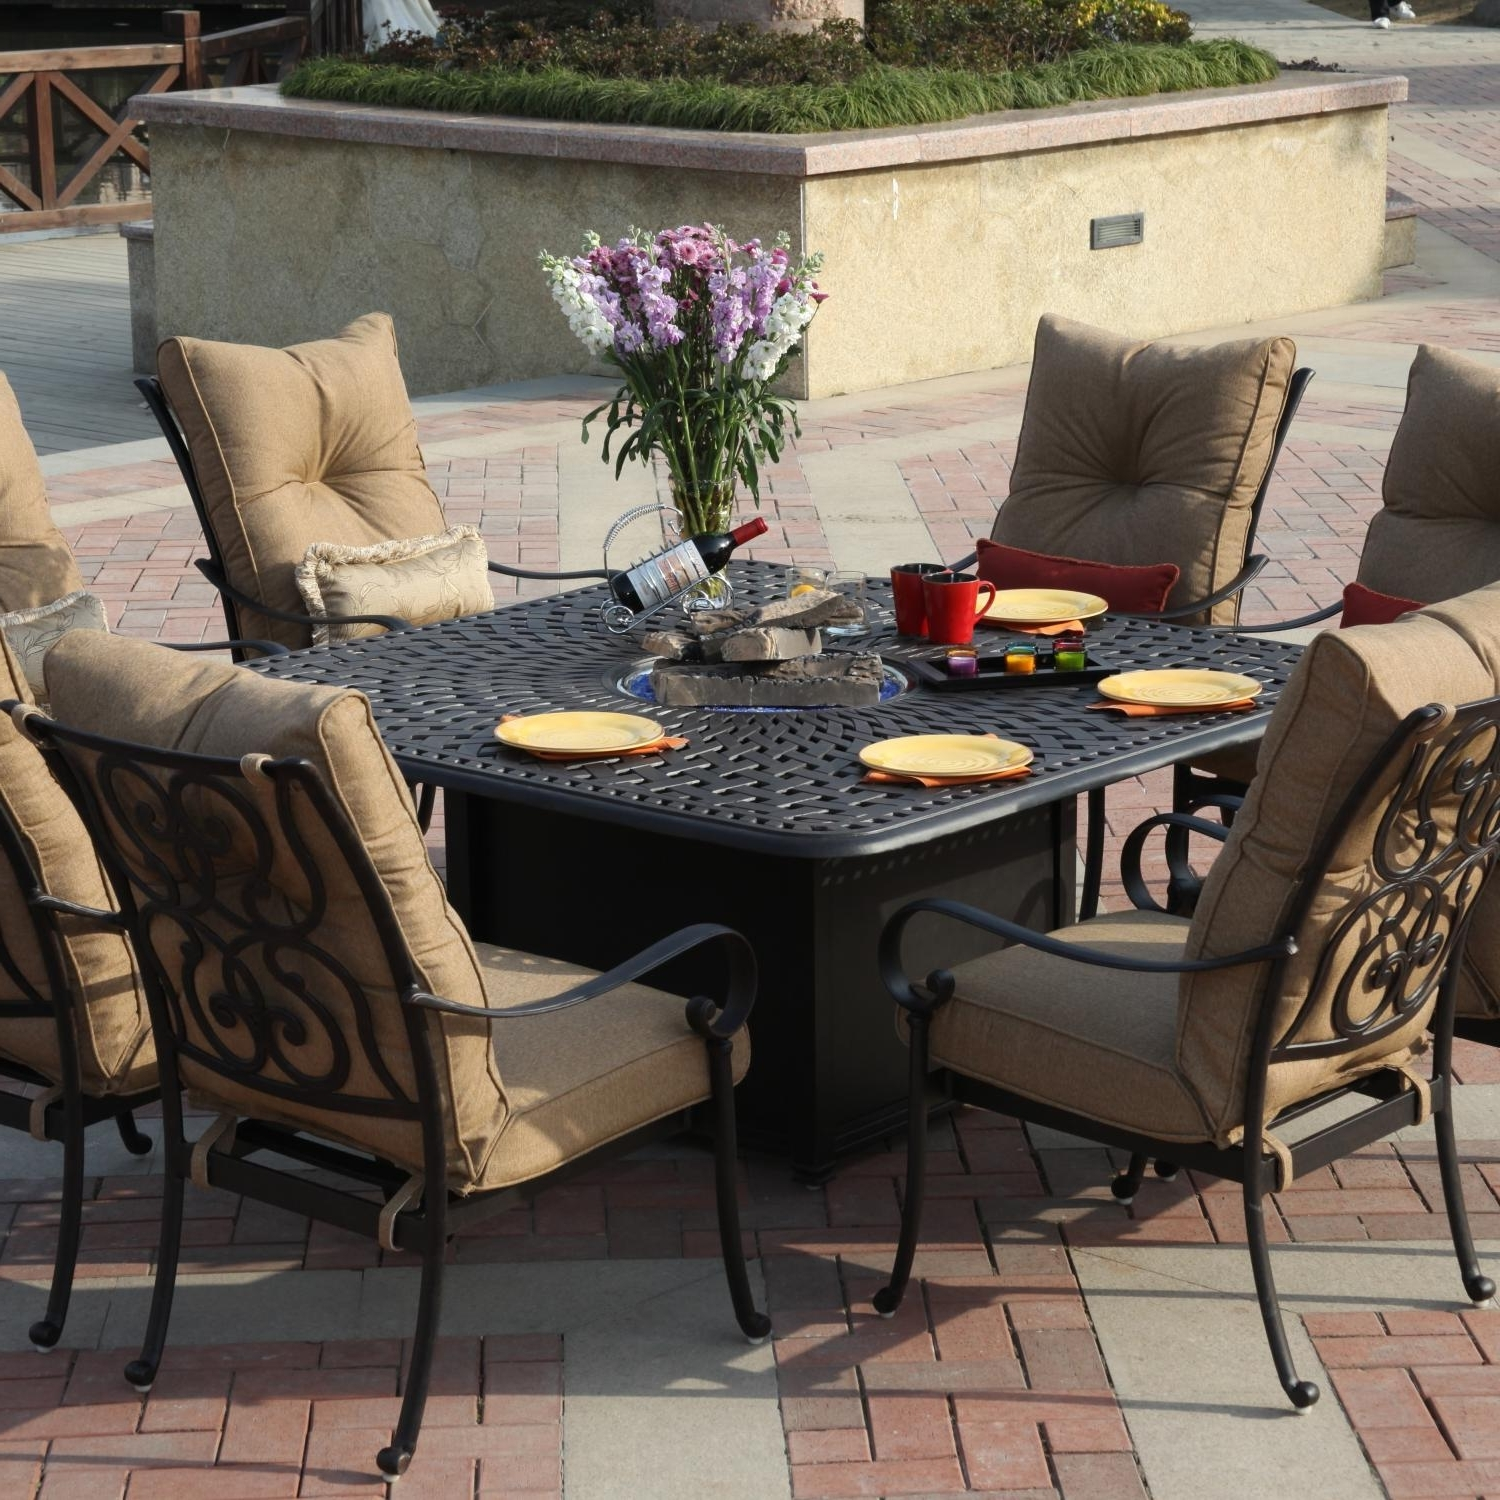 New Fire Pit Set Propane Conversation Sets Fire Pit Chat Set For Most Current Patio Conversation Sets With Fire Table (View 8 of 20)